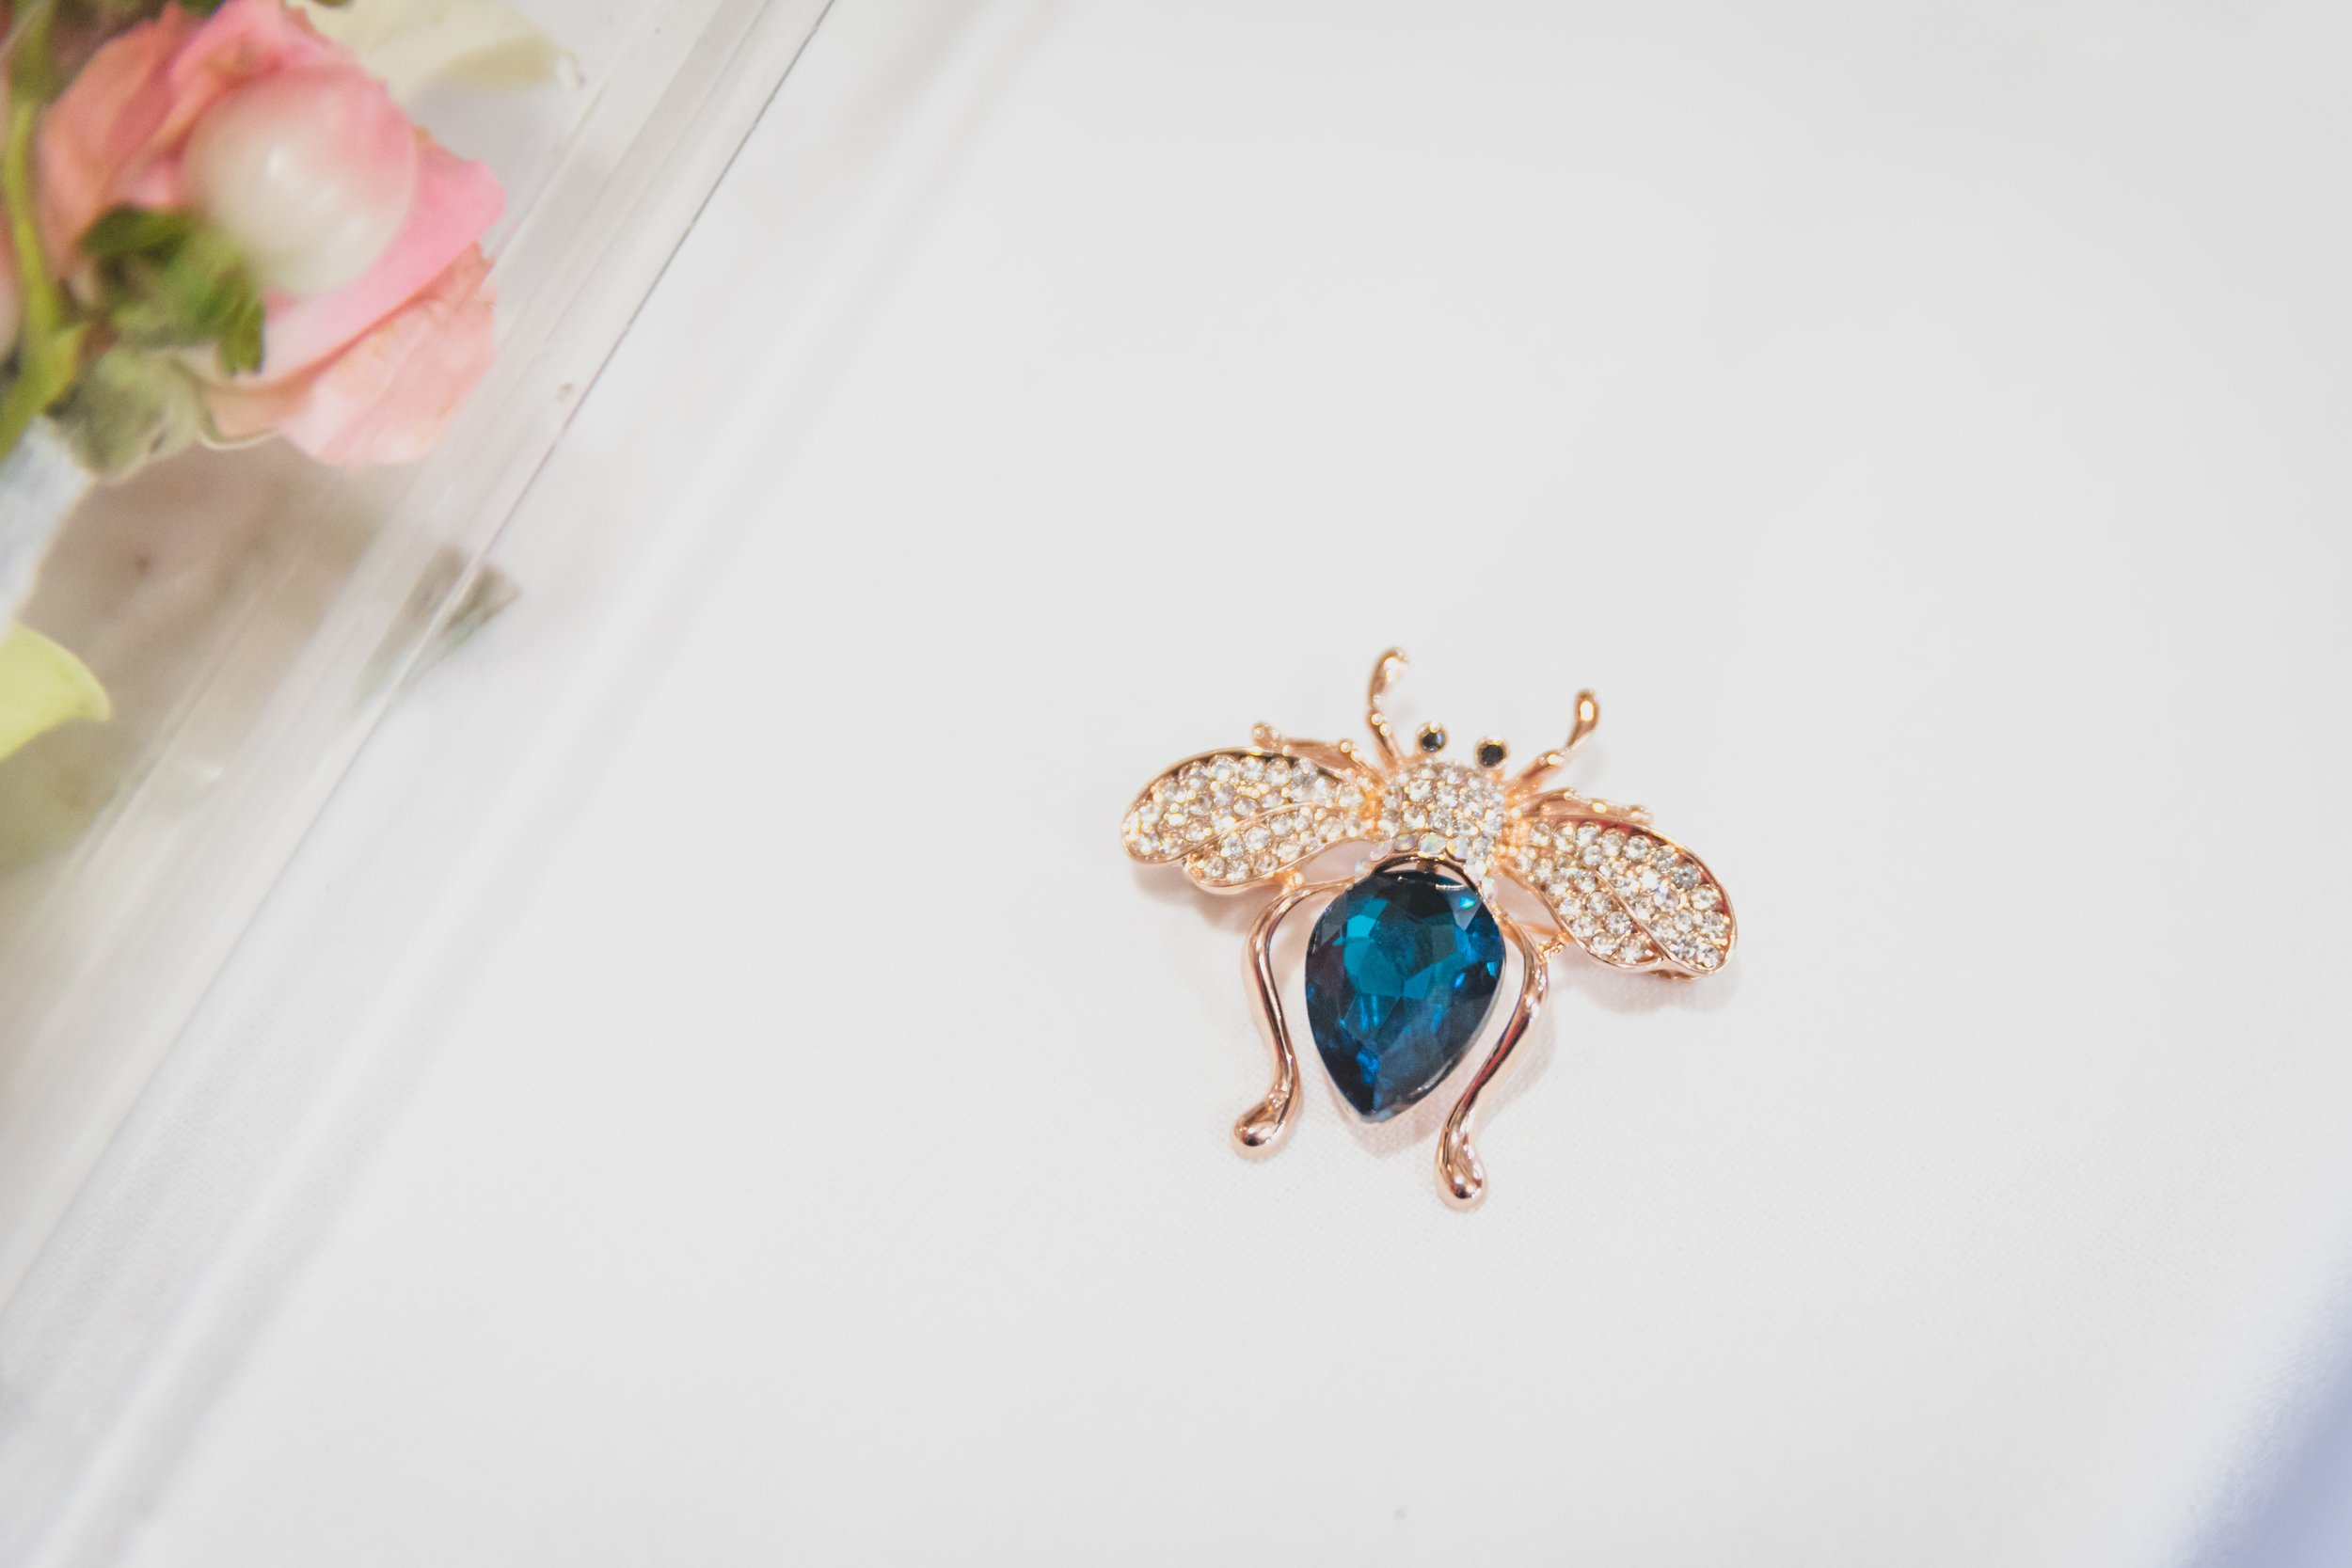 Wedding Photography - Something Old, Something New, Something Borrowed, Something Blue - Blue Sapphire set in an ornamental brooch